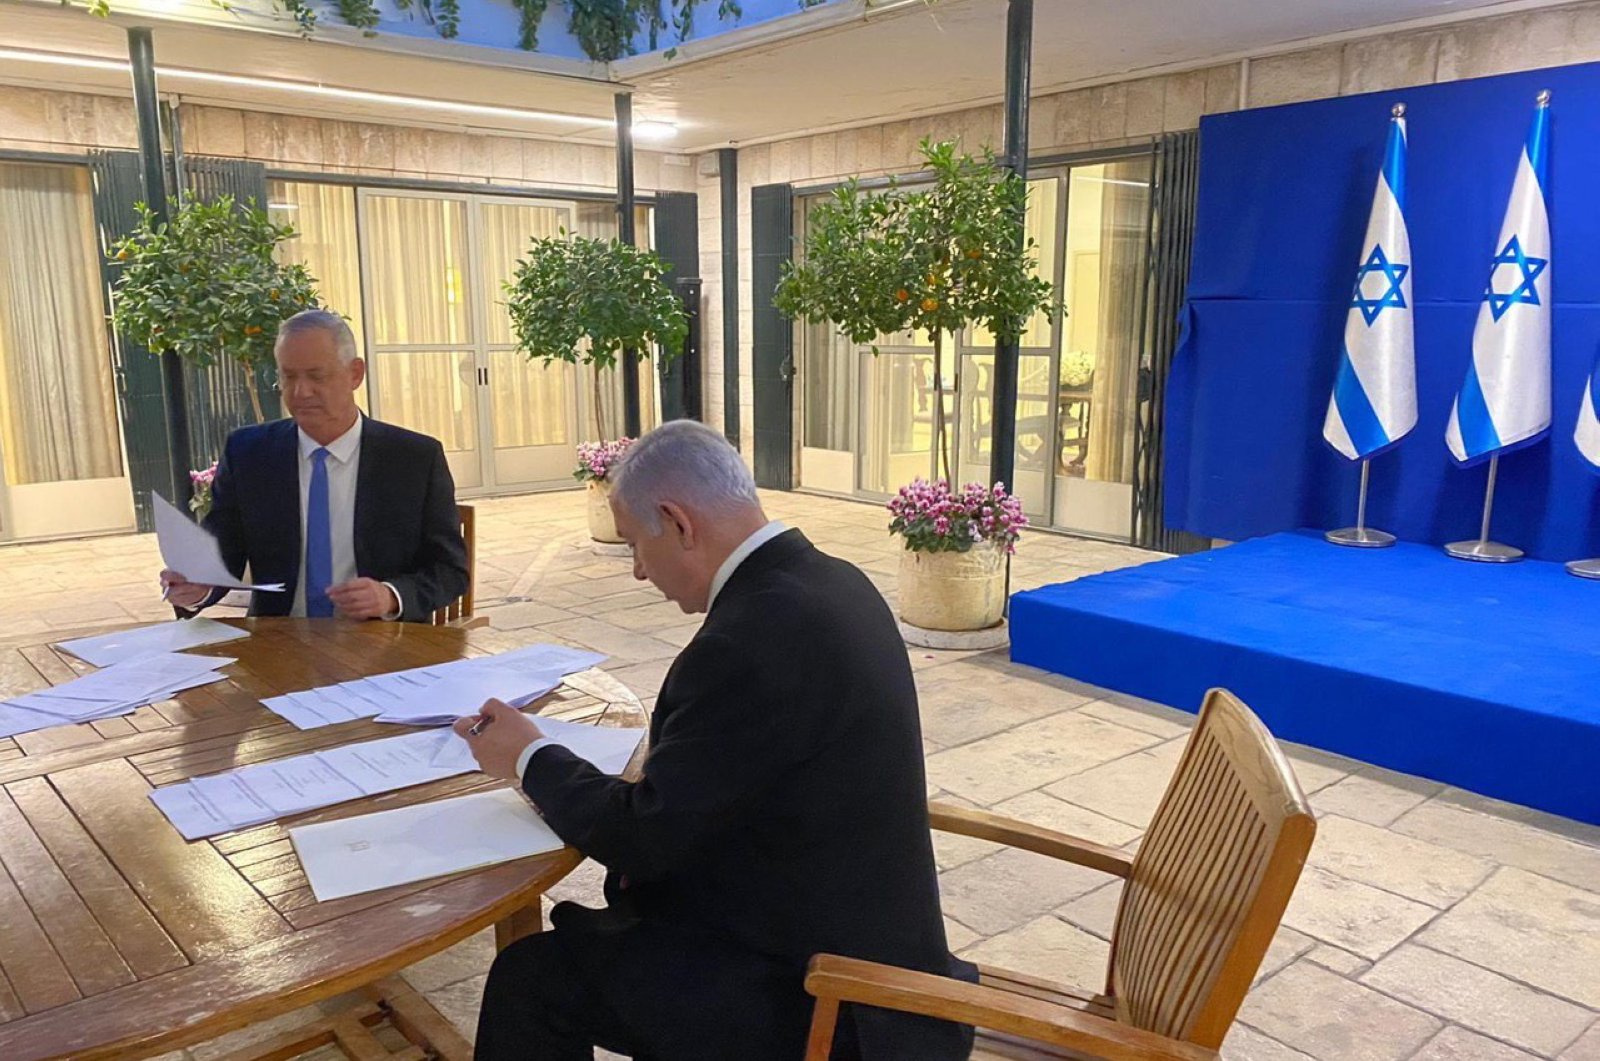 Israeli Prime Minister Benjamin Netanyahu (R) and Benny Gantz, former Israeli Army Chief of Staff and chairman of the Blue and White Israeli centrist political alliance (L) during a meeting in Jerusalem, Israel, April 20, 2020. (EPA Photo / Handout)